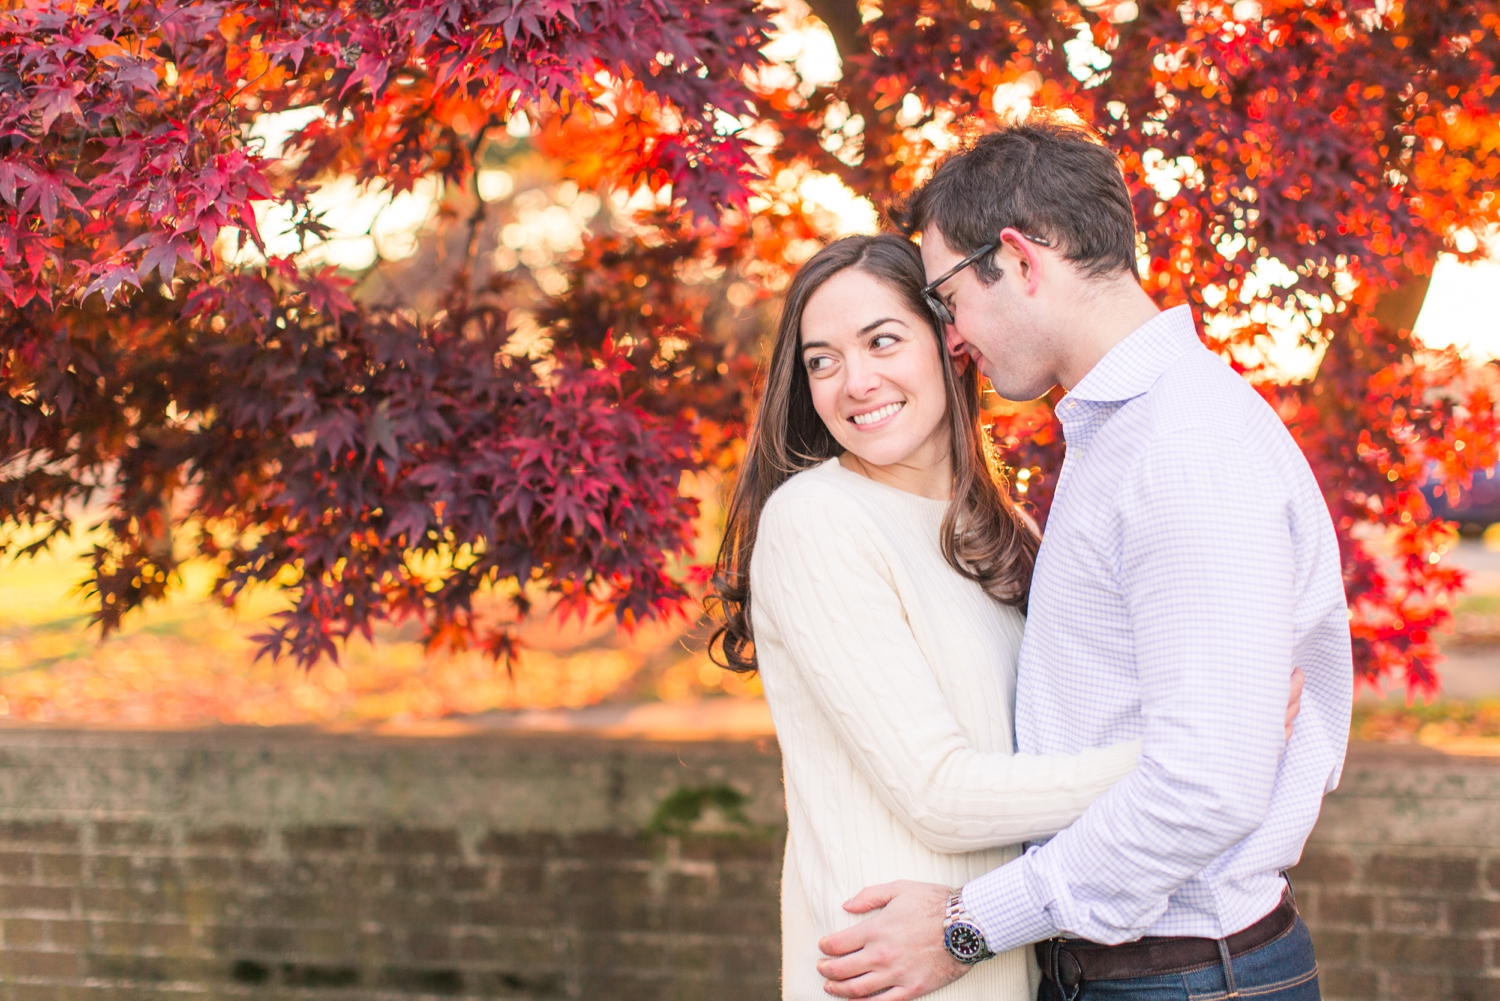 waveny-park-engagement-session-new-canaan-connecticut-wedding-photographer-ss-shaina-lee-photography-photo-25.jpg